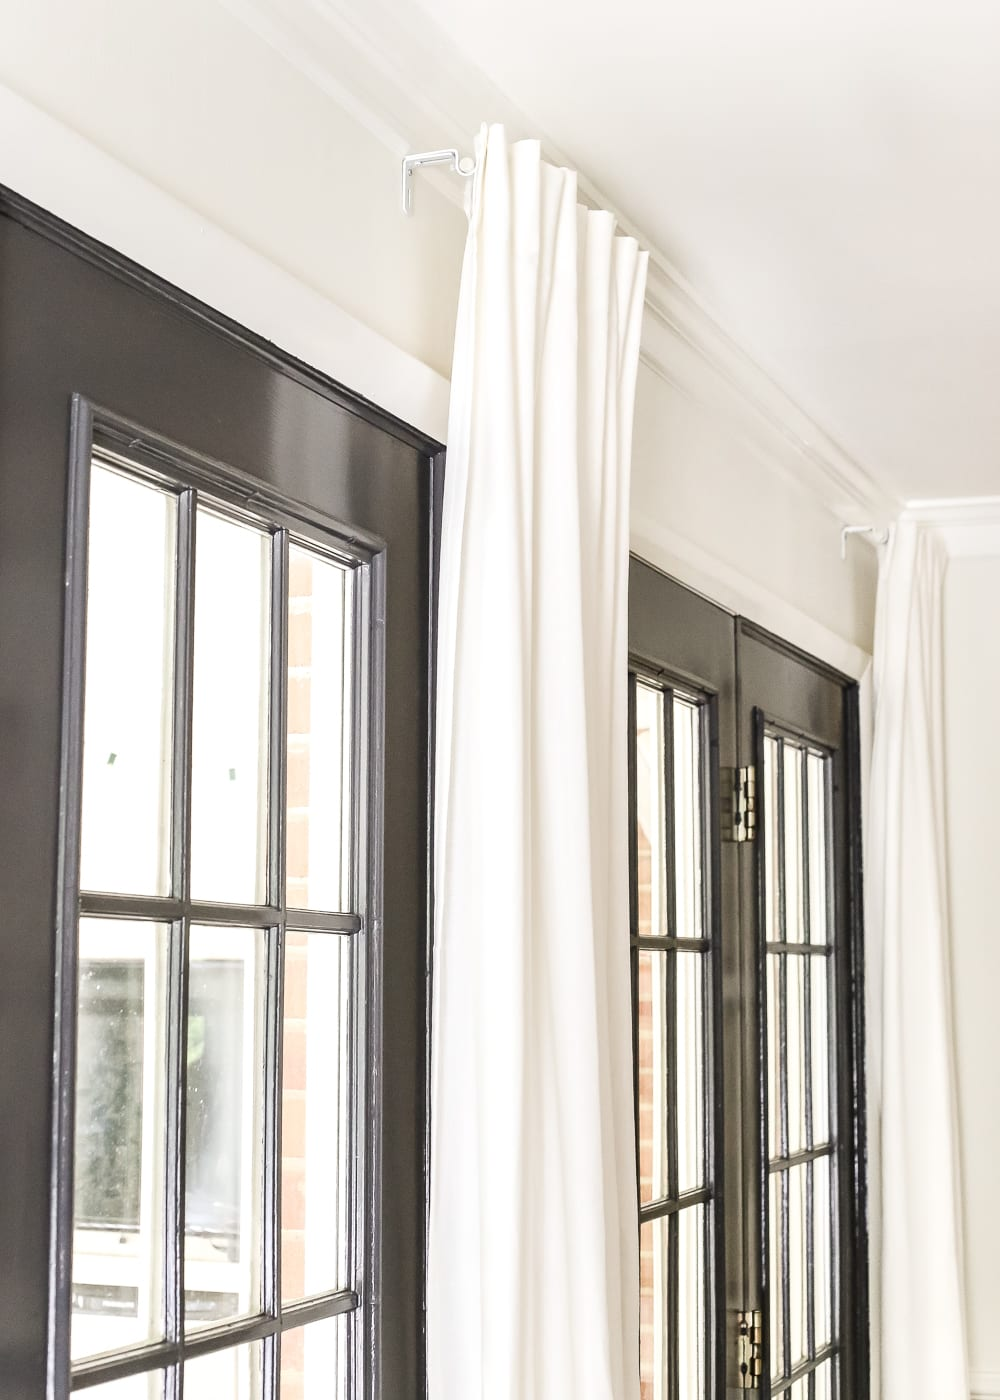 how to make living room curtains colonial style ideas fake a long curtain rod bless er house blesserhouse com simple inexpensive